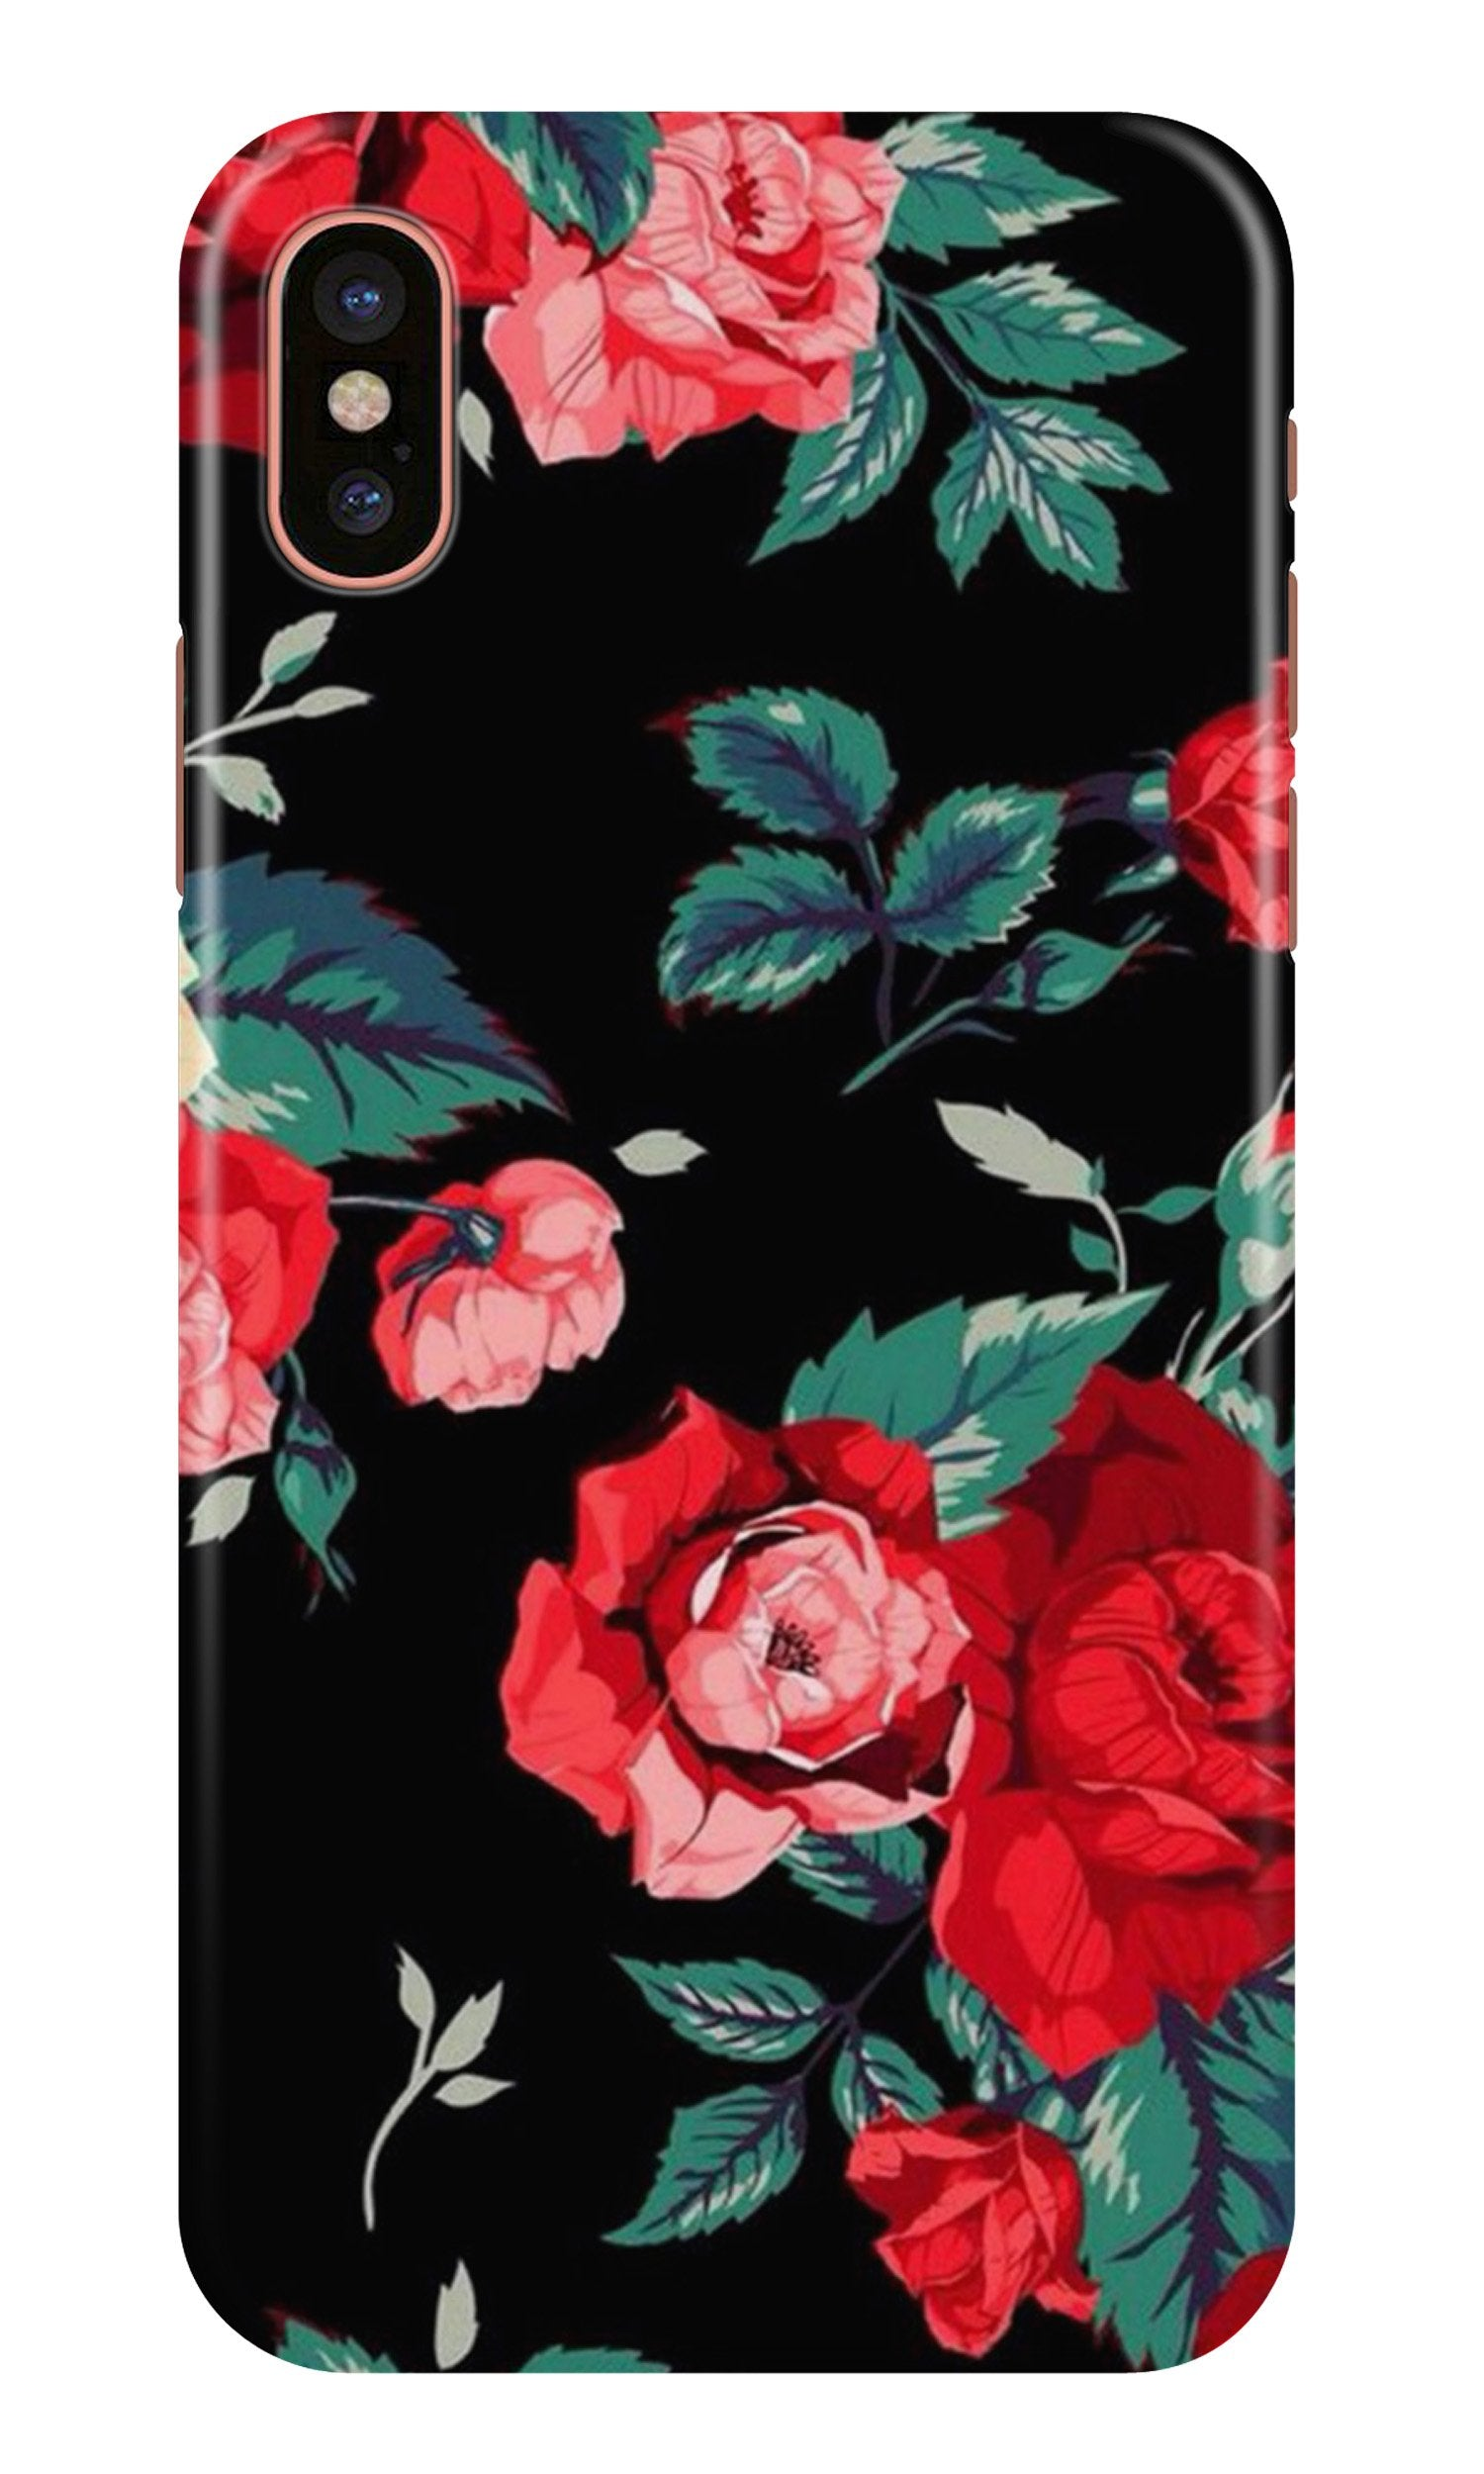 Red Rose2 Case for iPhone X